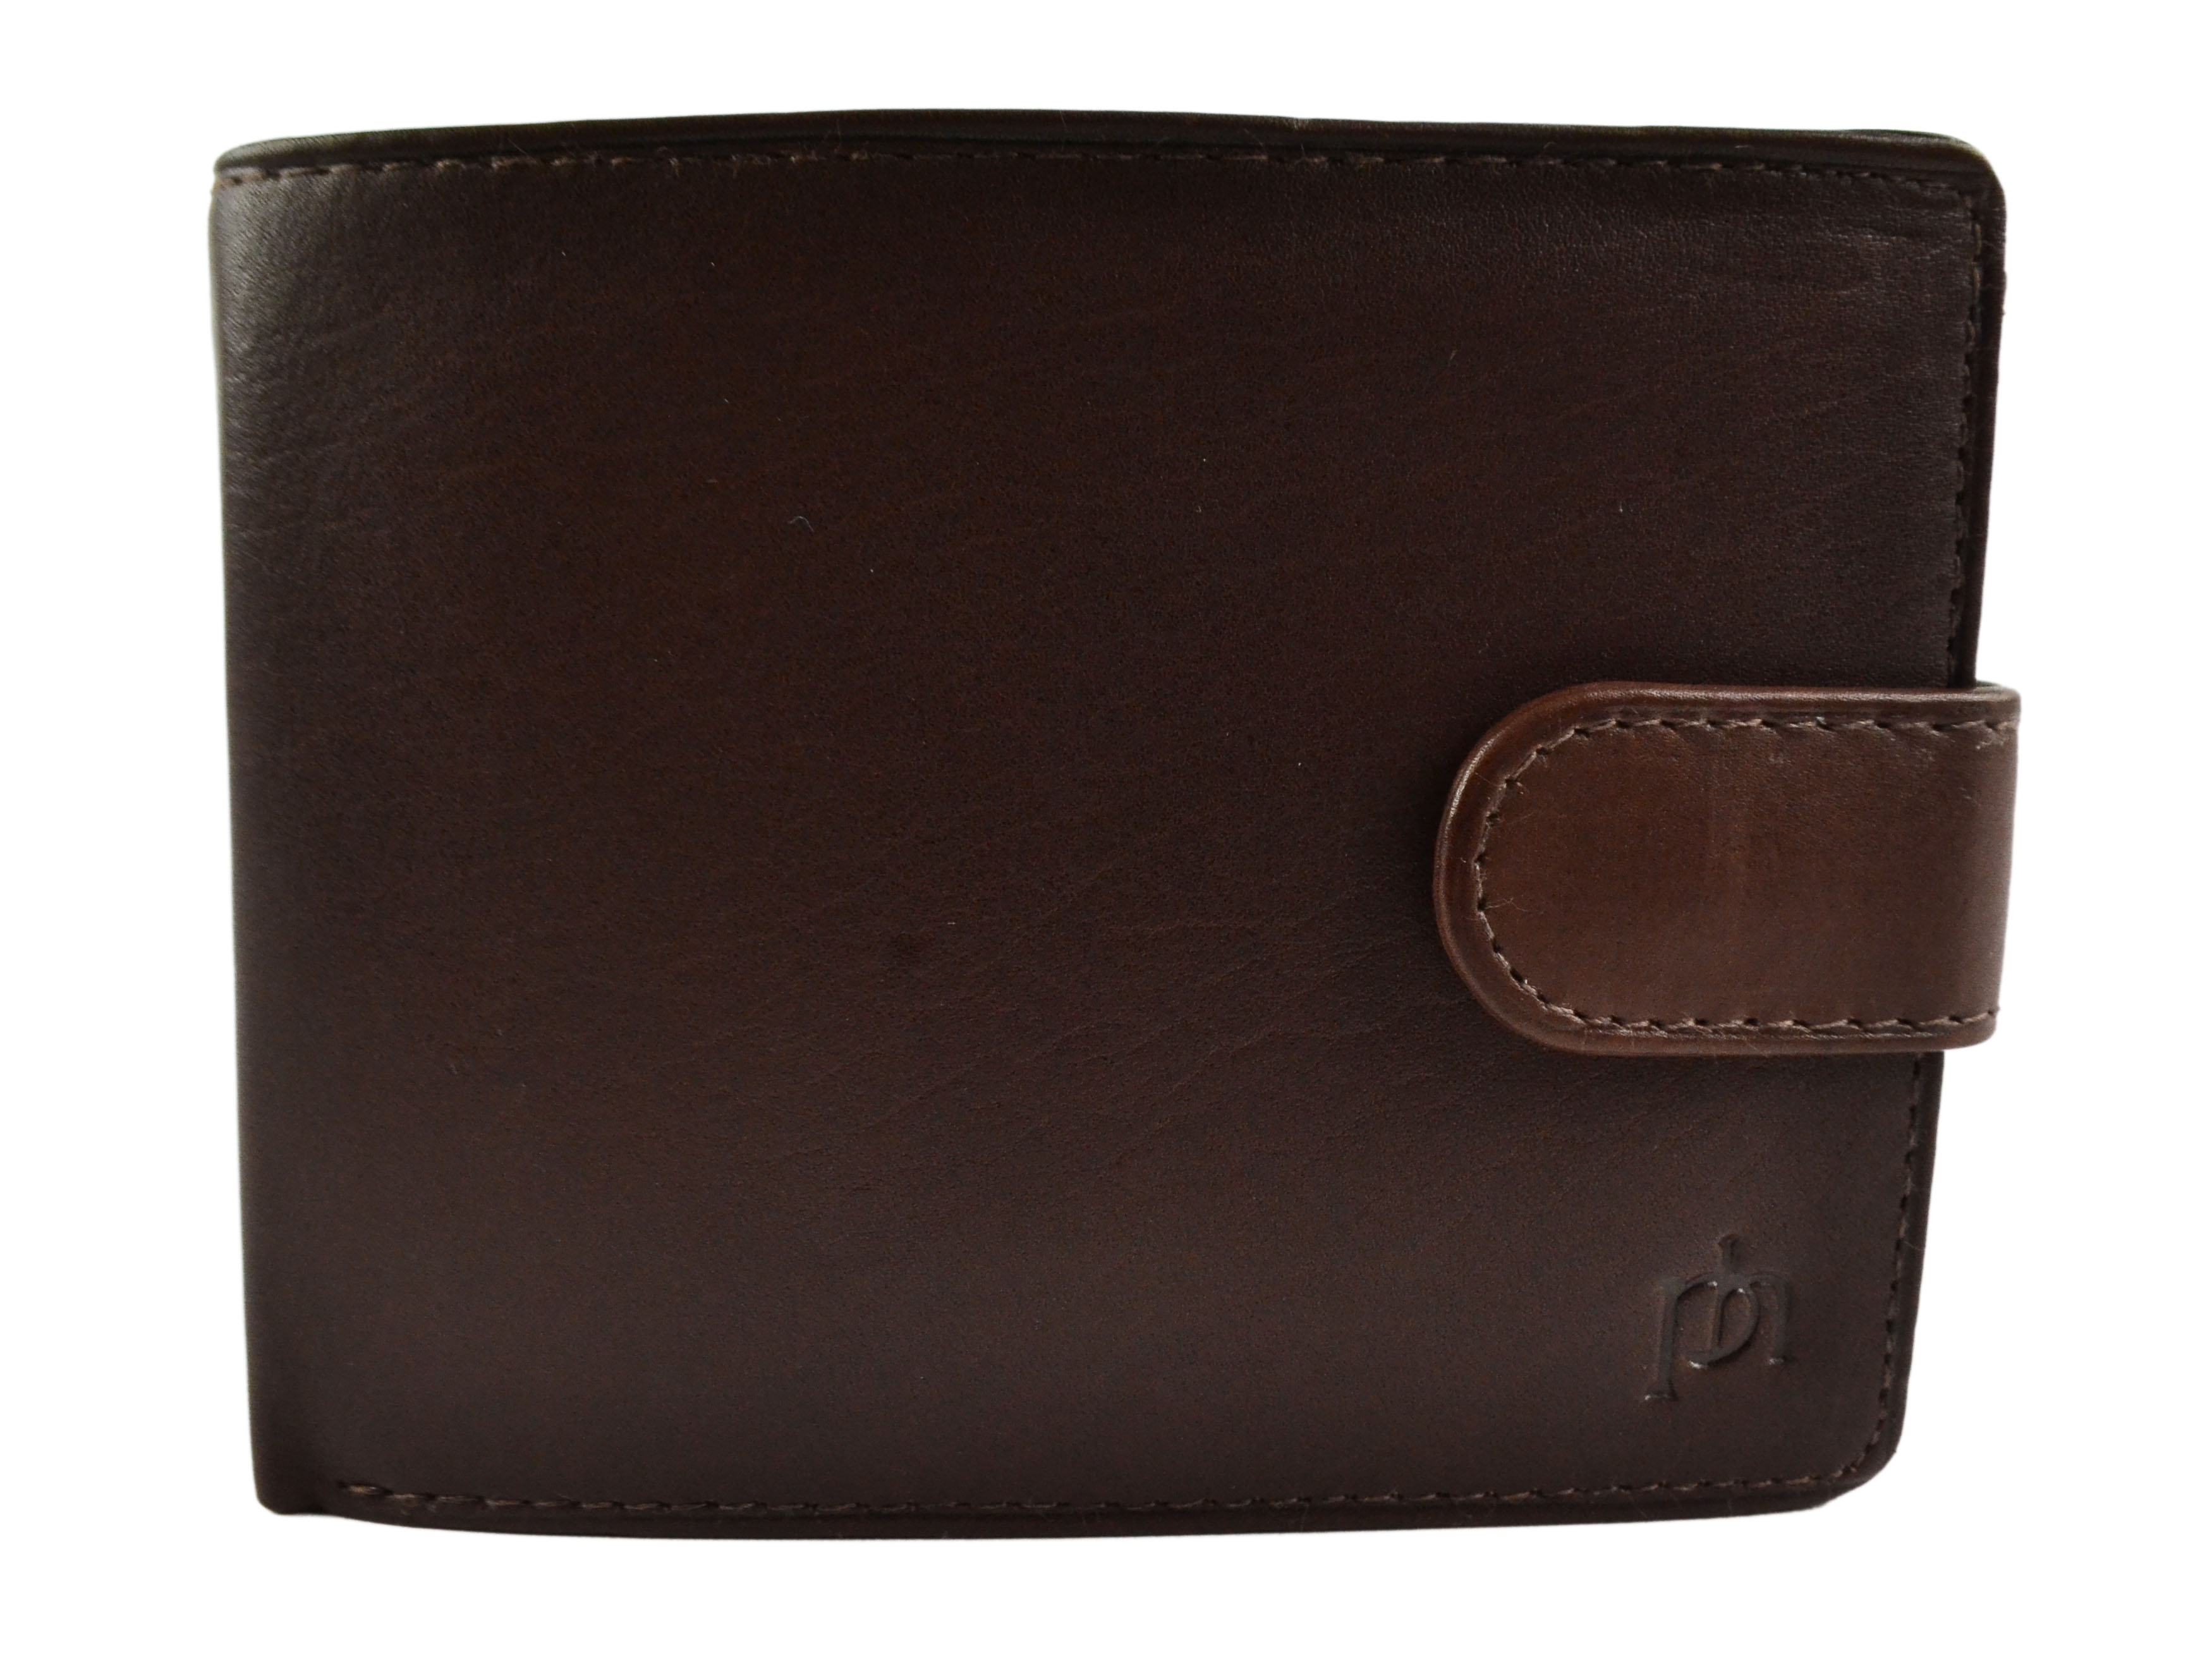 Mens-Quality-Leather-Wallet-by-Prime-Hide-Gift-Boxed-Stylish-with-Coin-Pocket thumbnail 10